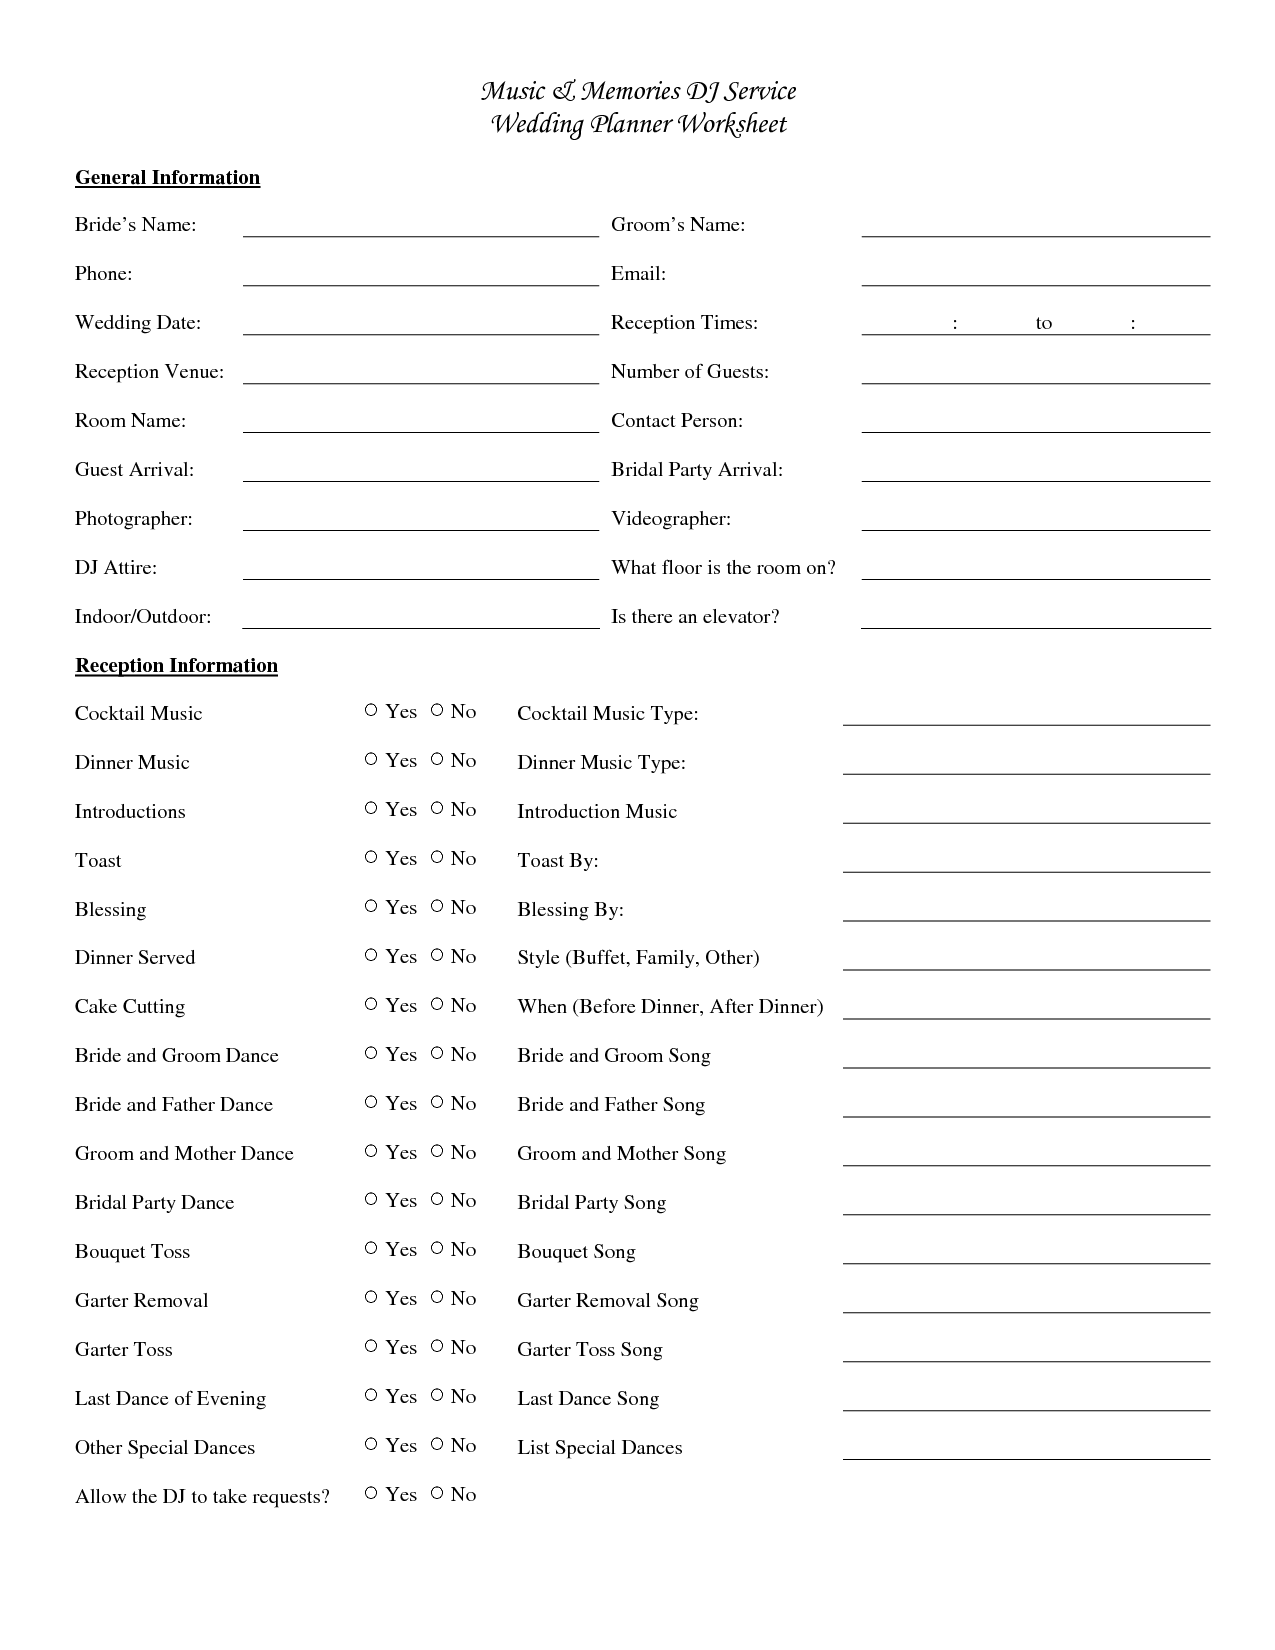 wedding dj checklist | Music _ Memories DJ Service Wedding Planner ...